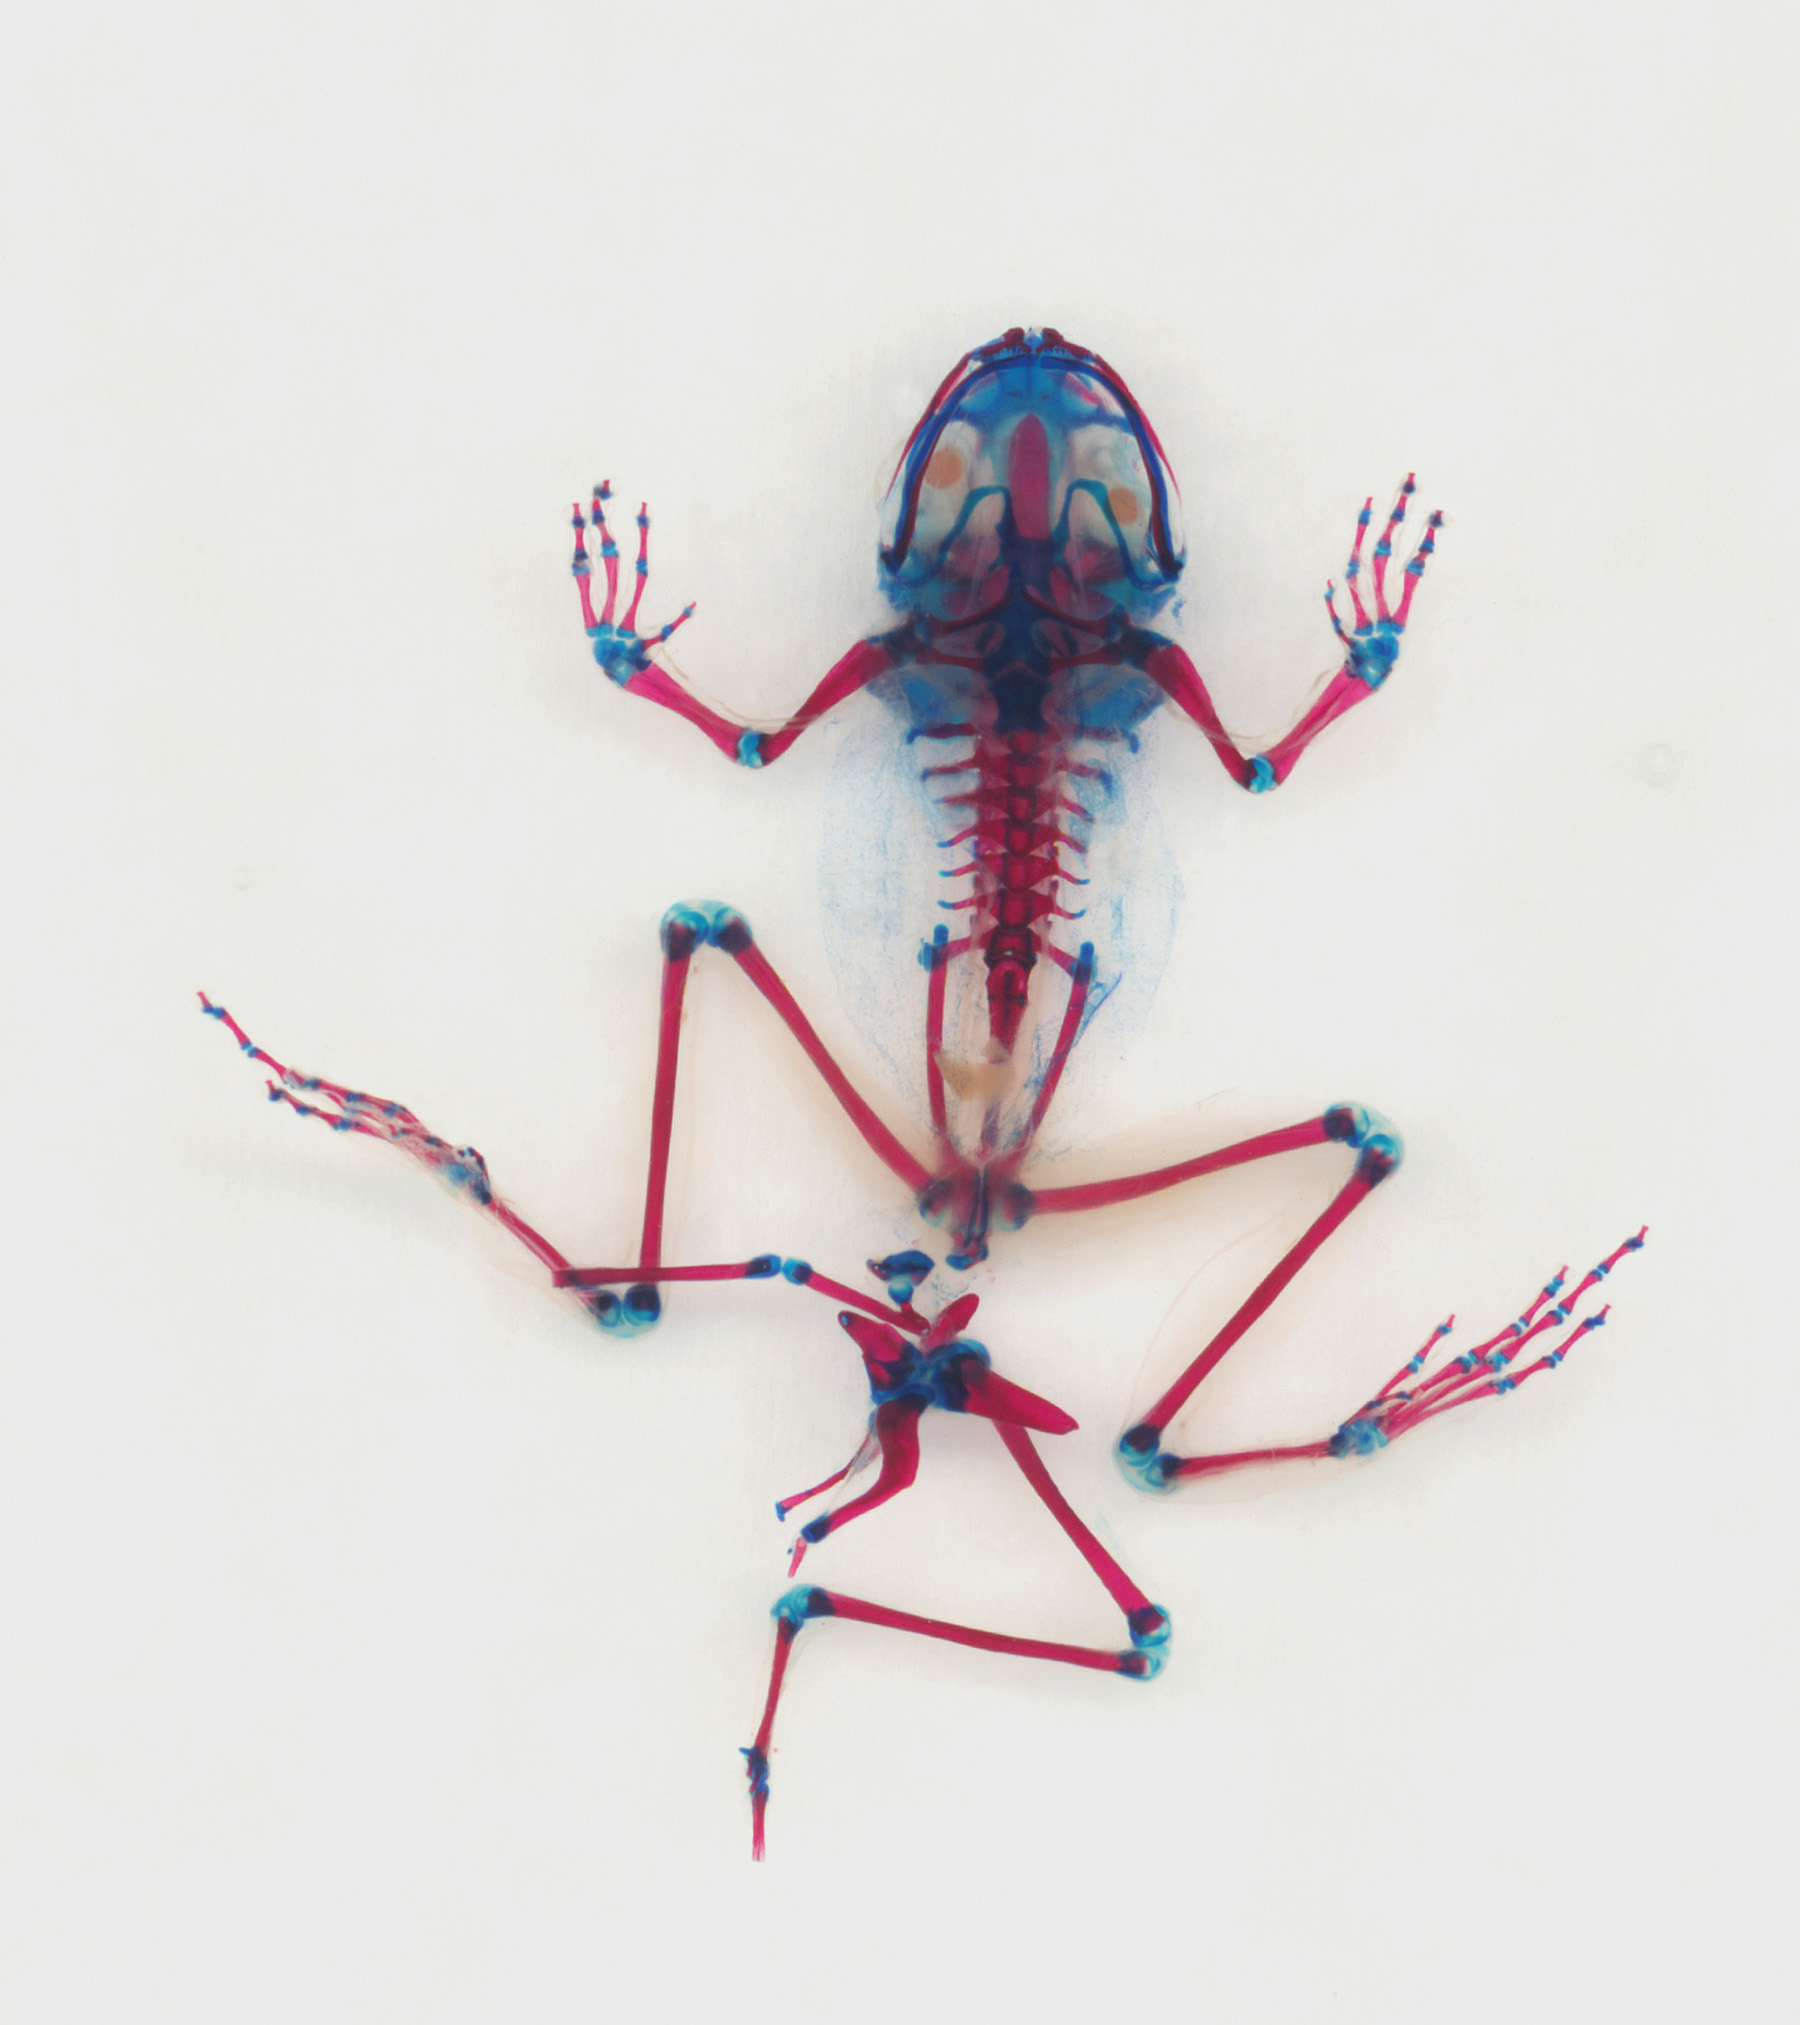 xray image of frog with  bones and joints highlighted in red and blue